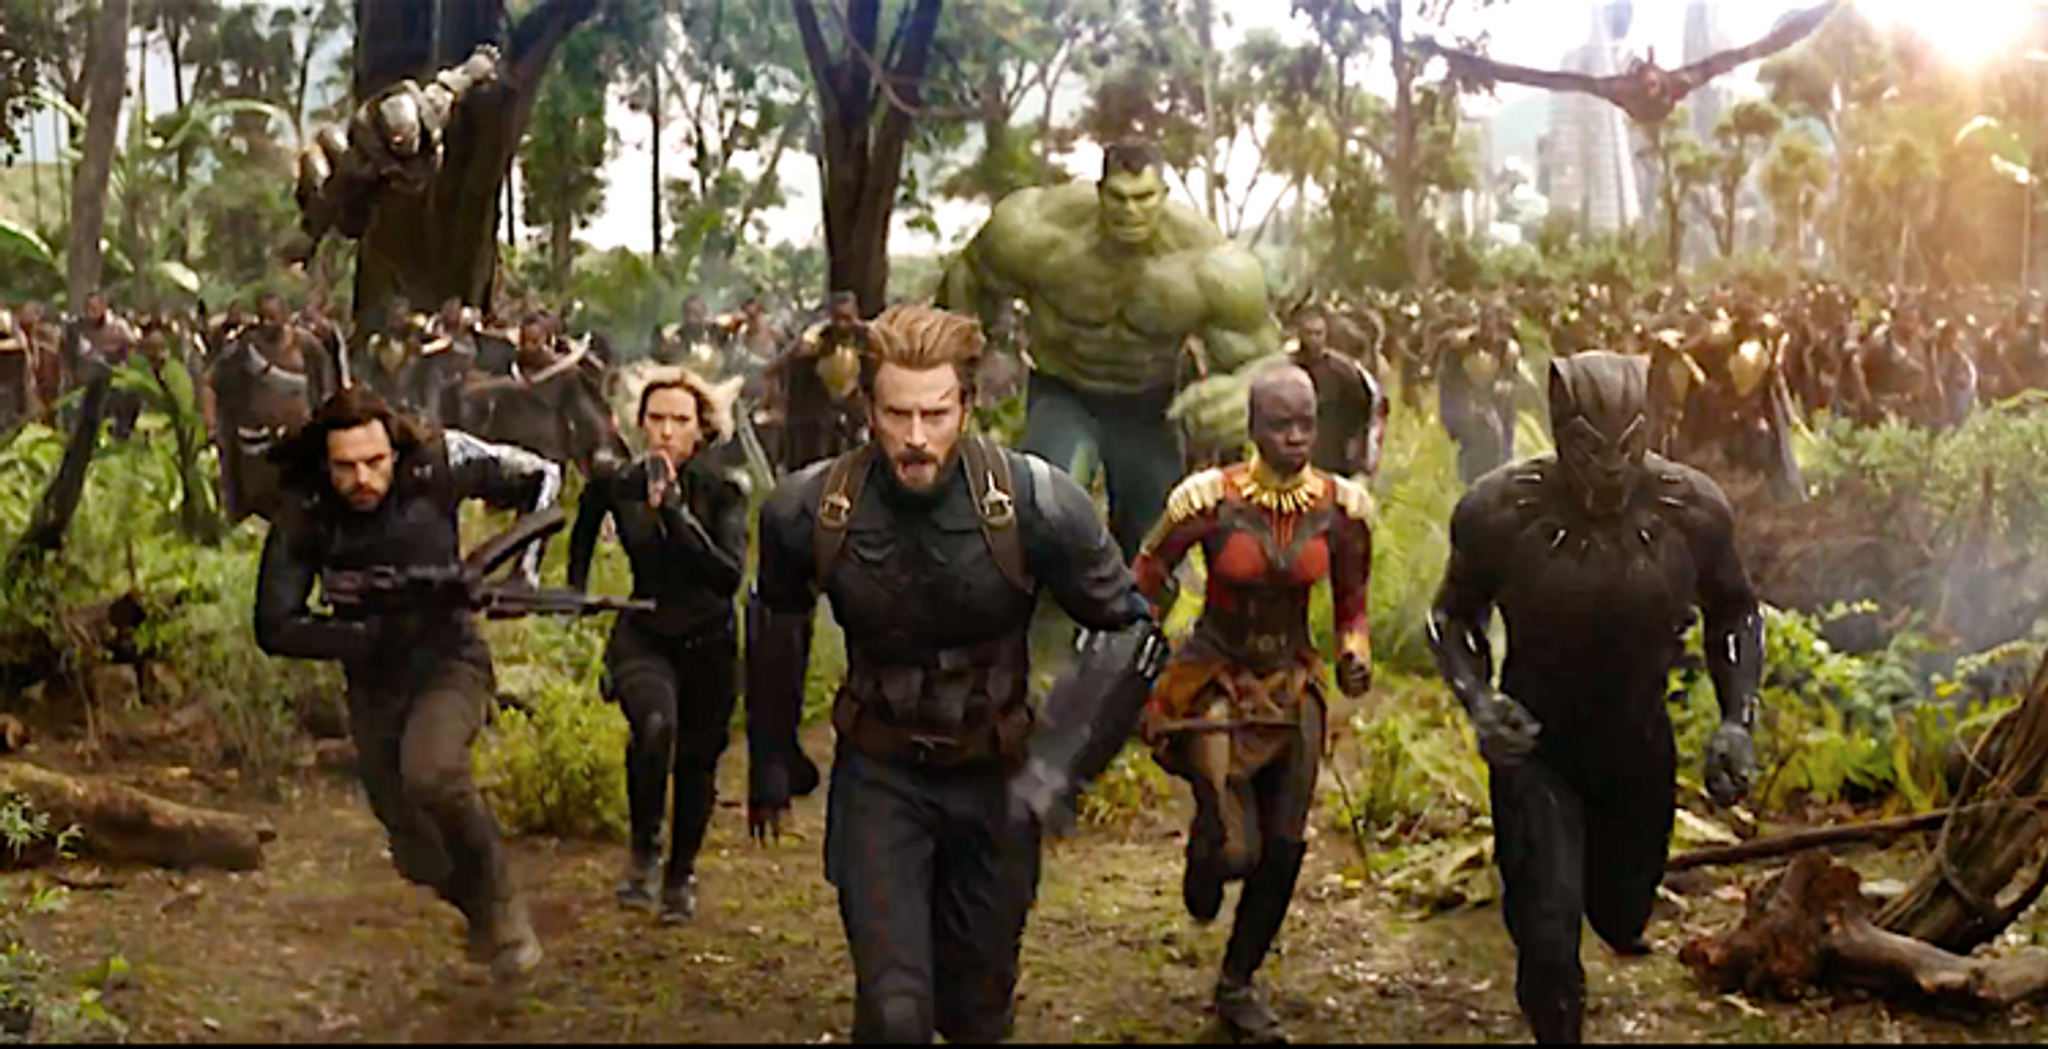 Marvel Studios announces new 'Avengers: Infinity War' release date in the best way